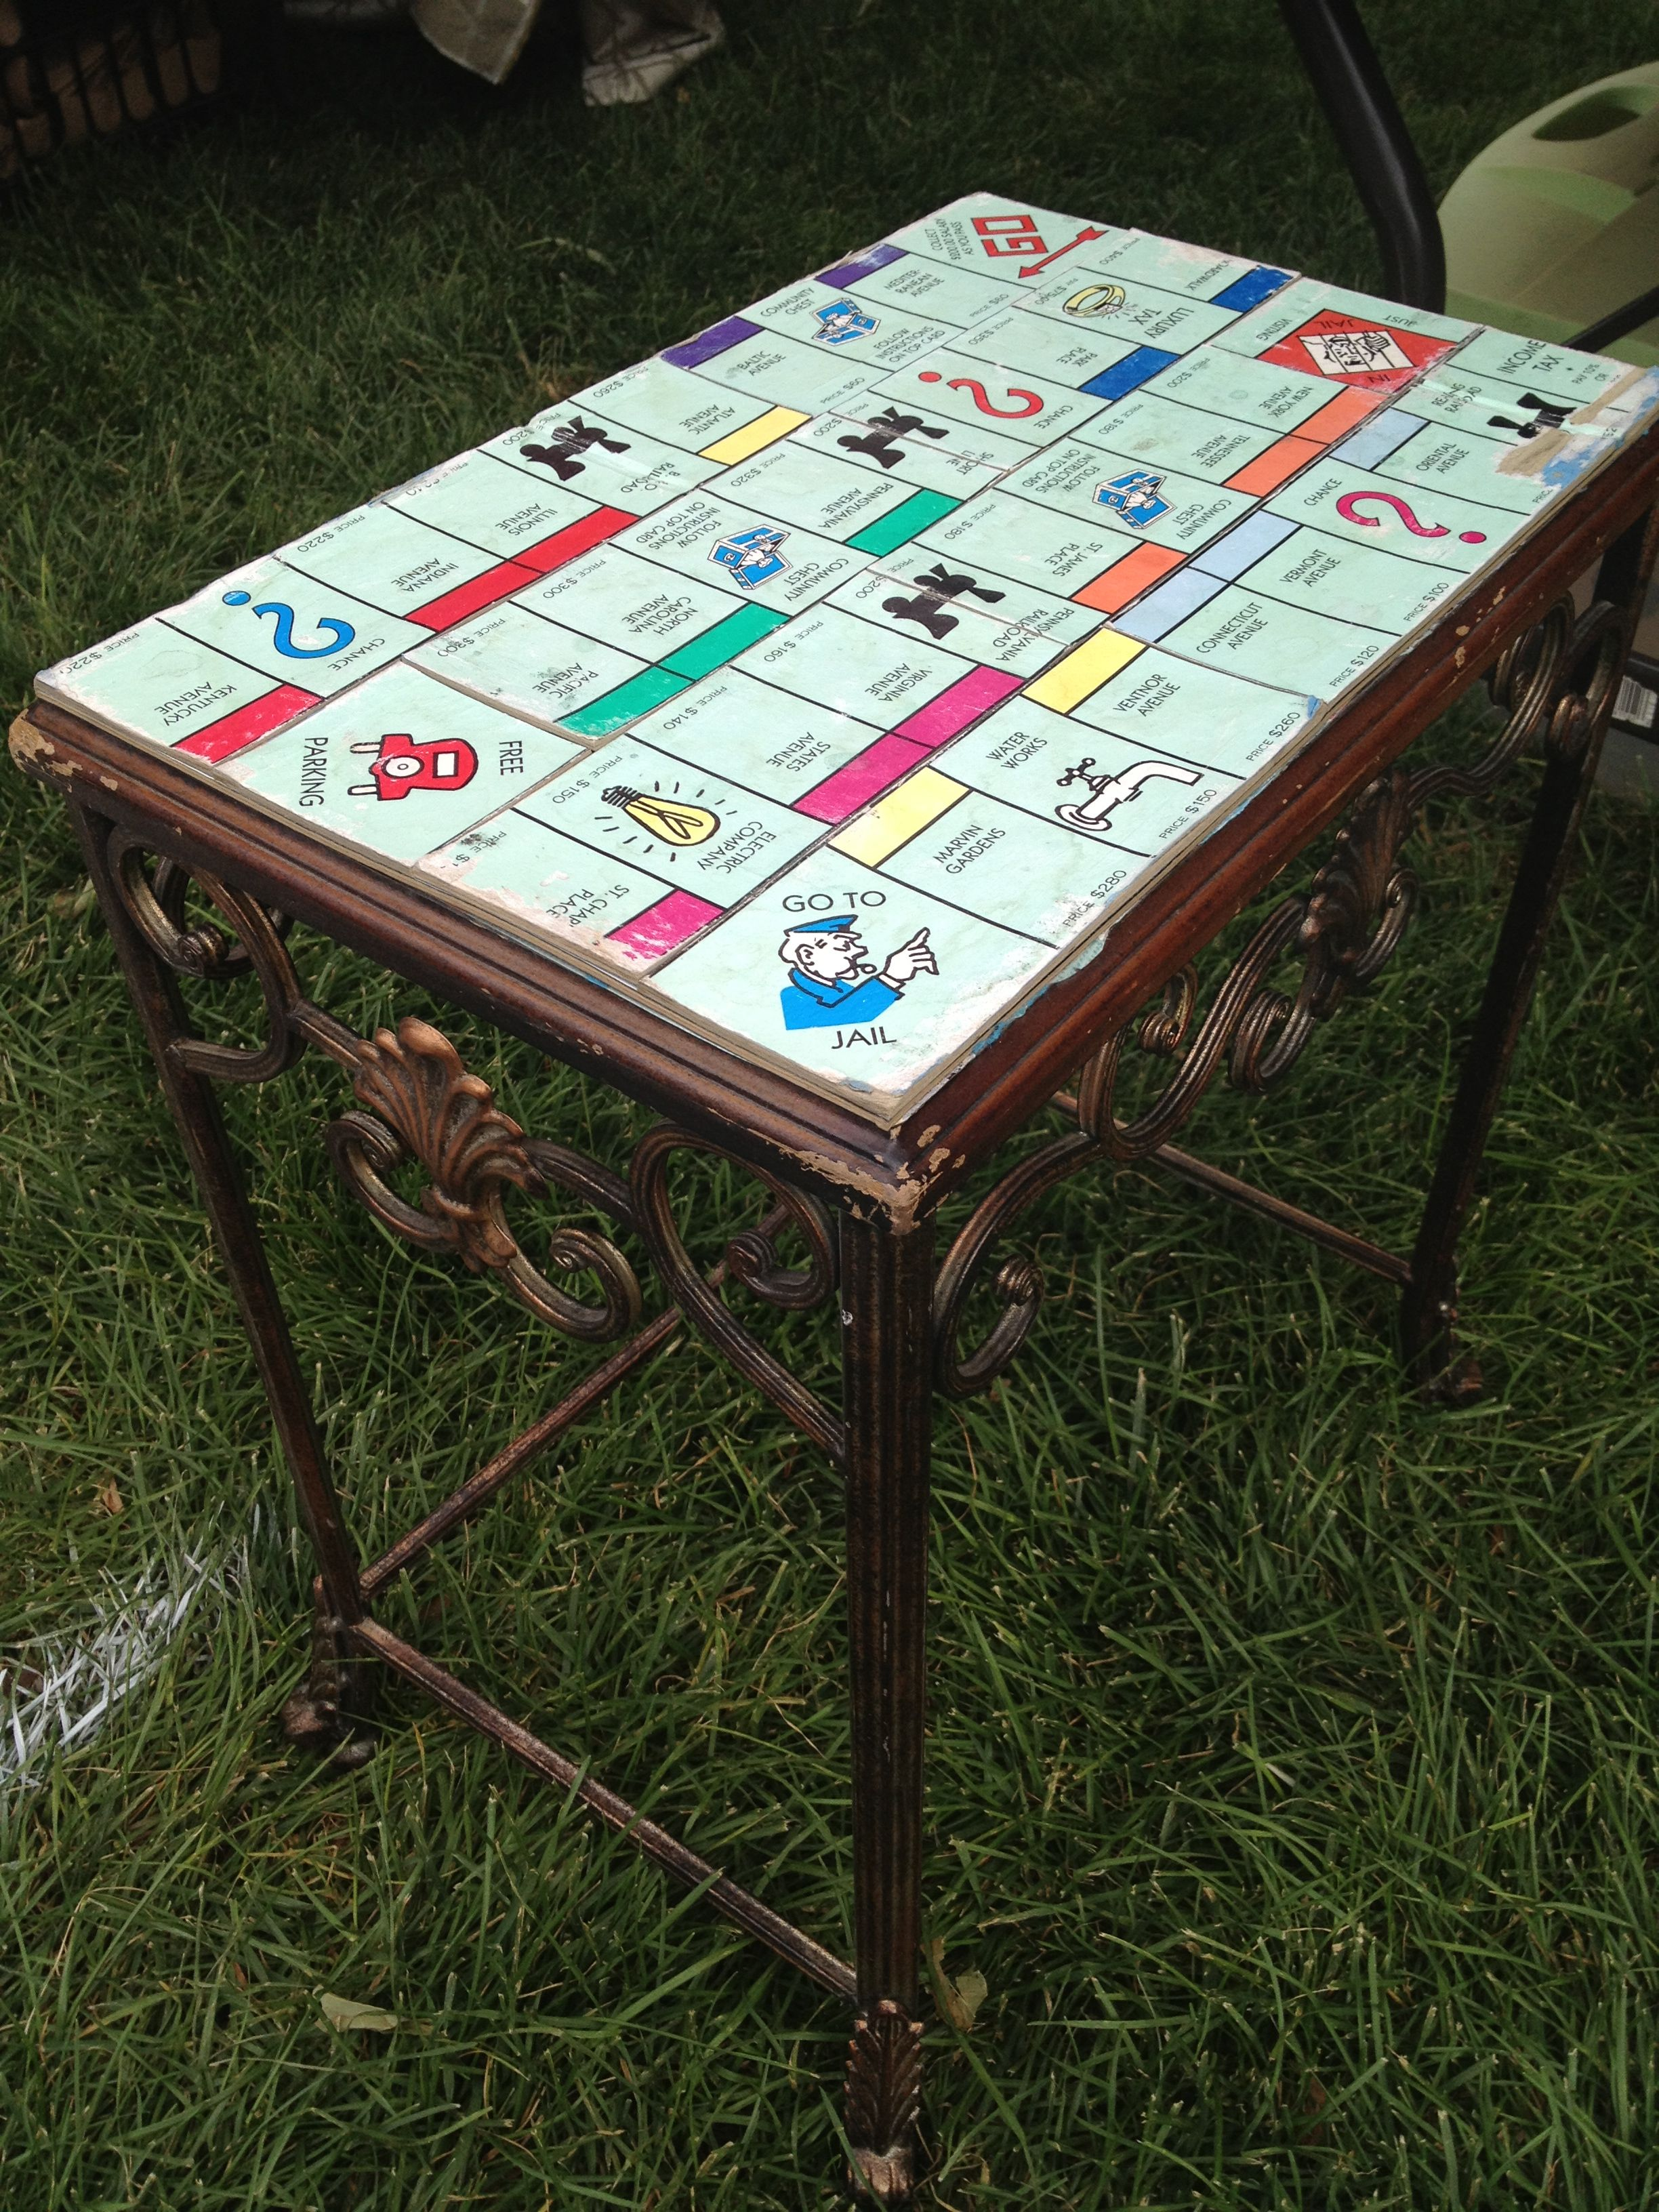 Monopoly coffee tableseen at the Utah Farmer's Market